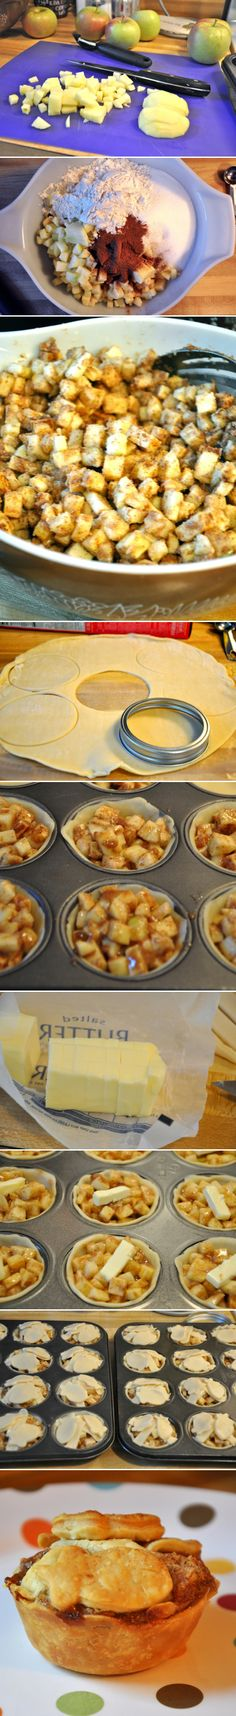 Mini Apple Pies. Cut 8 cups Apples into 1/2 in bits, mix with 12 tbsp flour, 1 1/2 cups sugar, 4 heaping tsp cinnamon, and 1/4-1/2 tsp nutmeg.  Cut chiled NOT frozen pie crust, fill pan, place slice of butter ontop. Cover with left over dough, brush w/ melted butter  bake at 400 for 18-22 min.